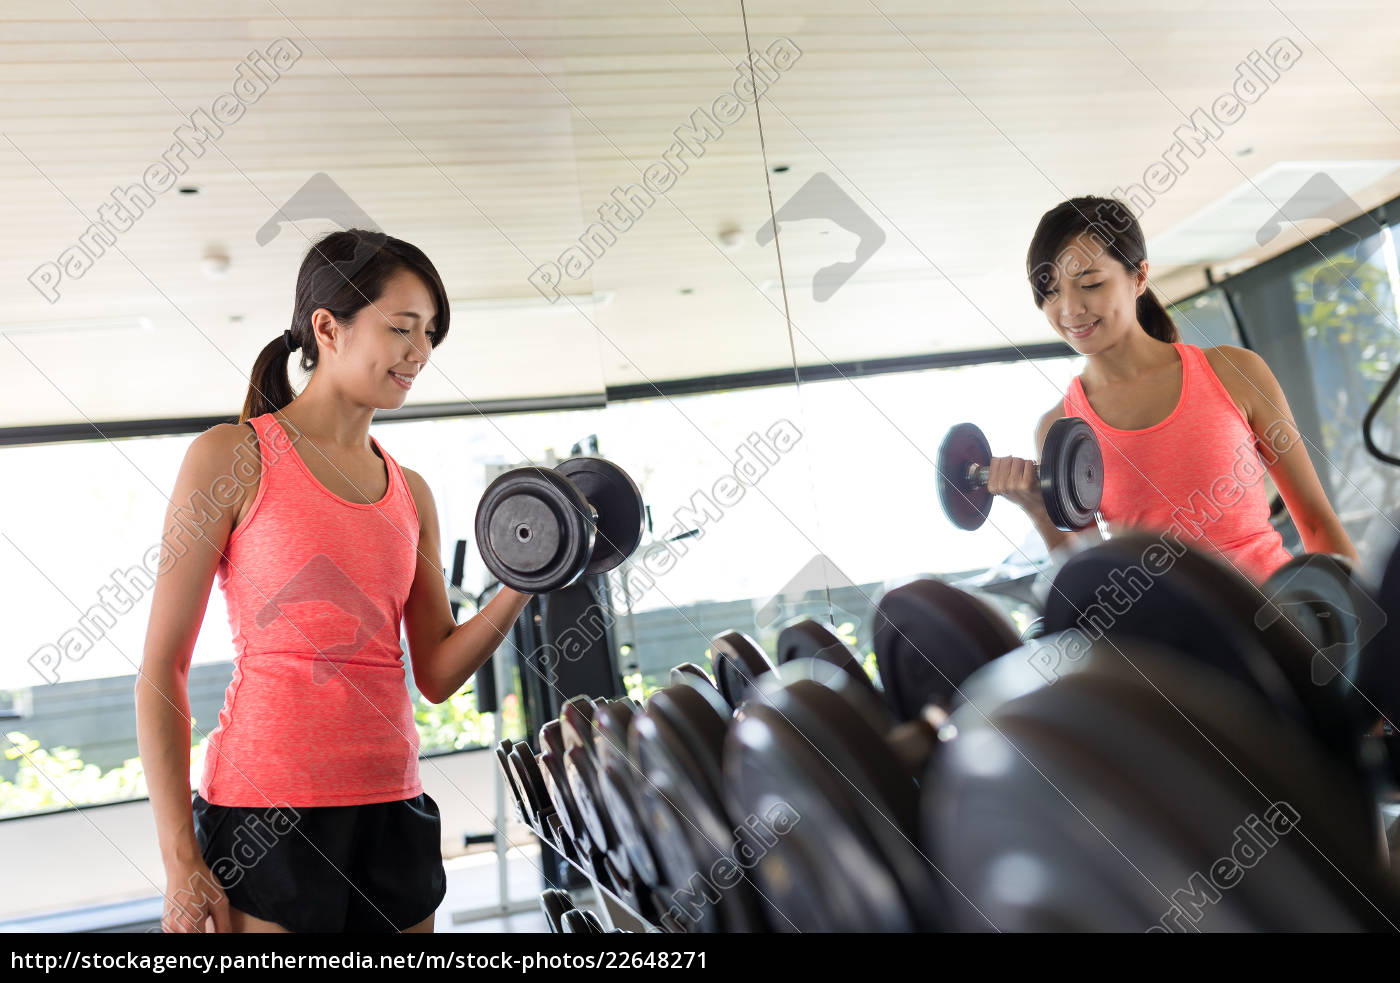 young, woman, weight, training - 22648271